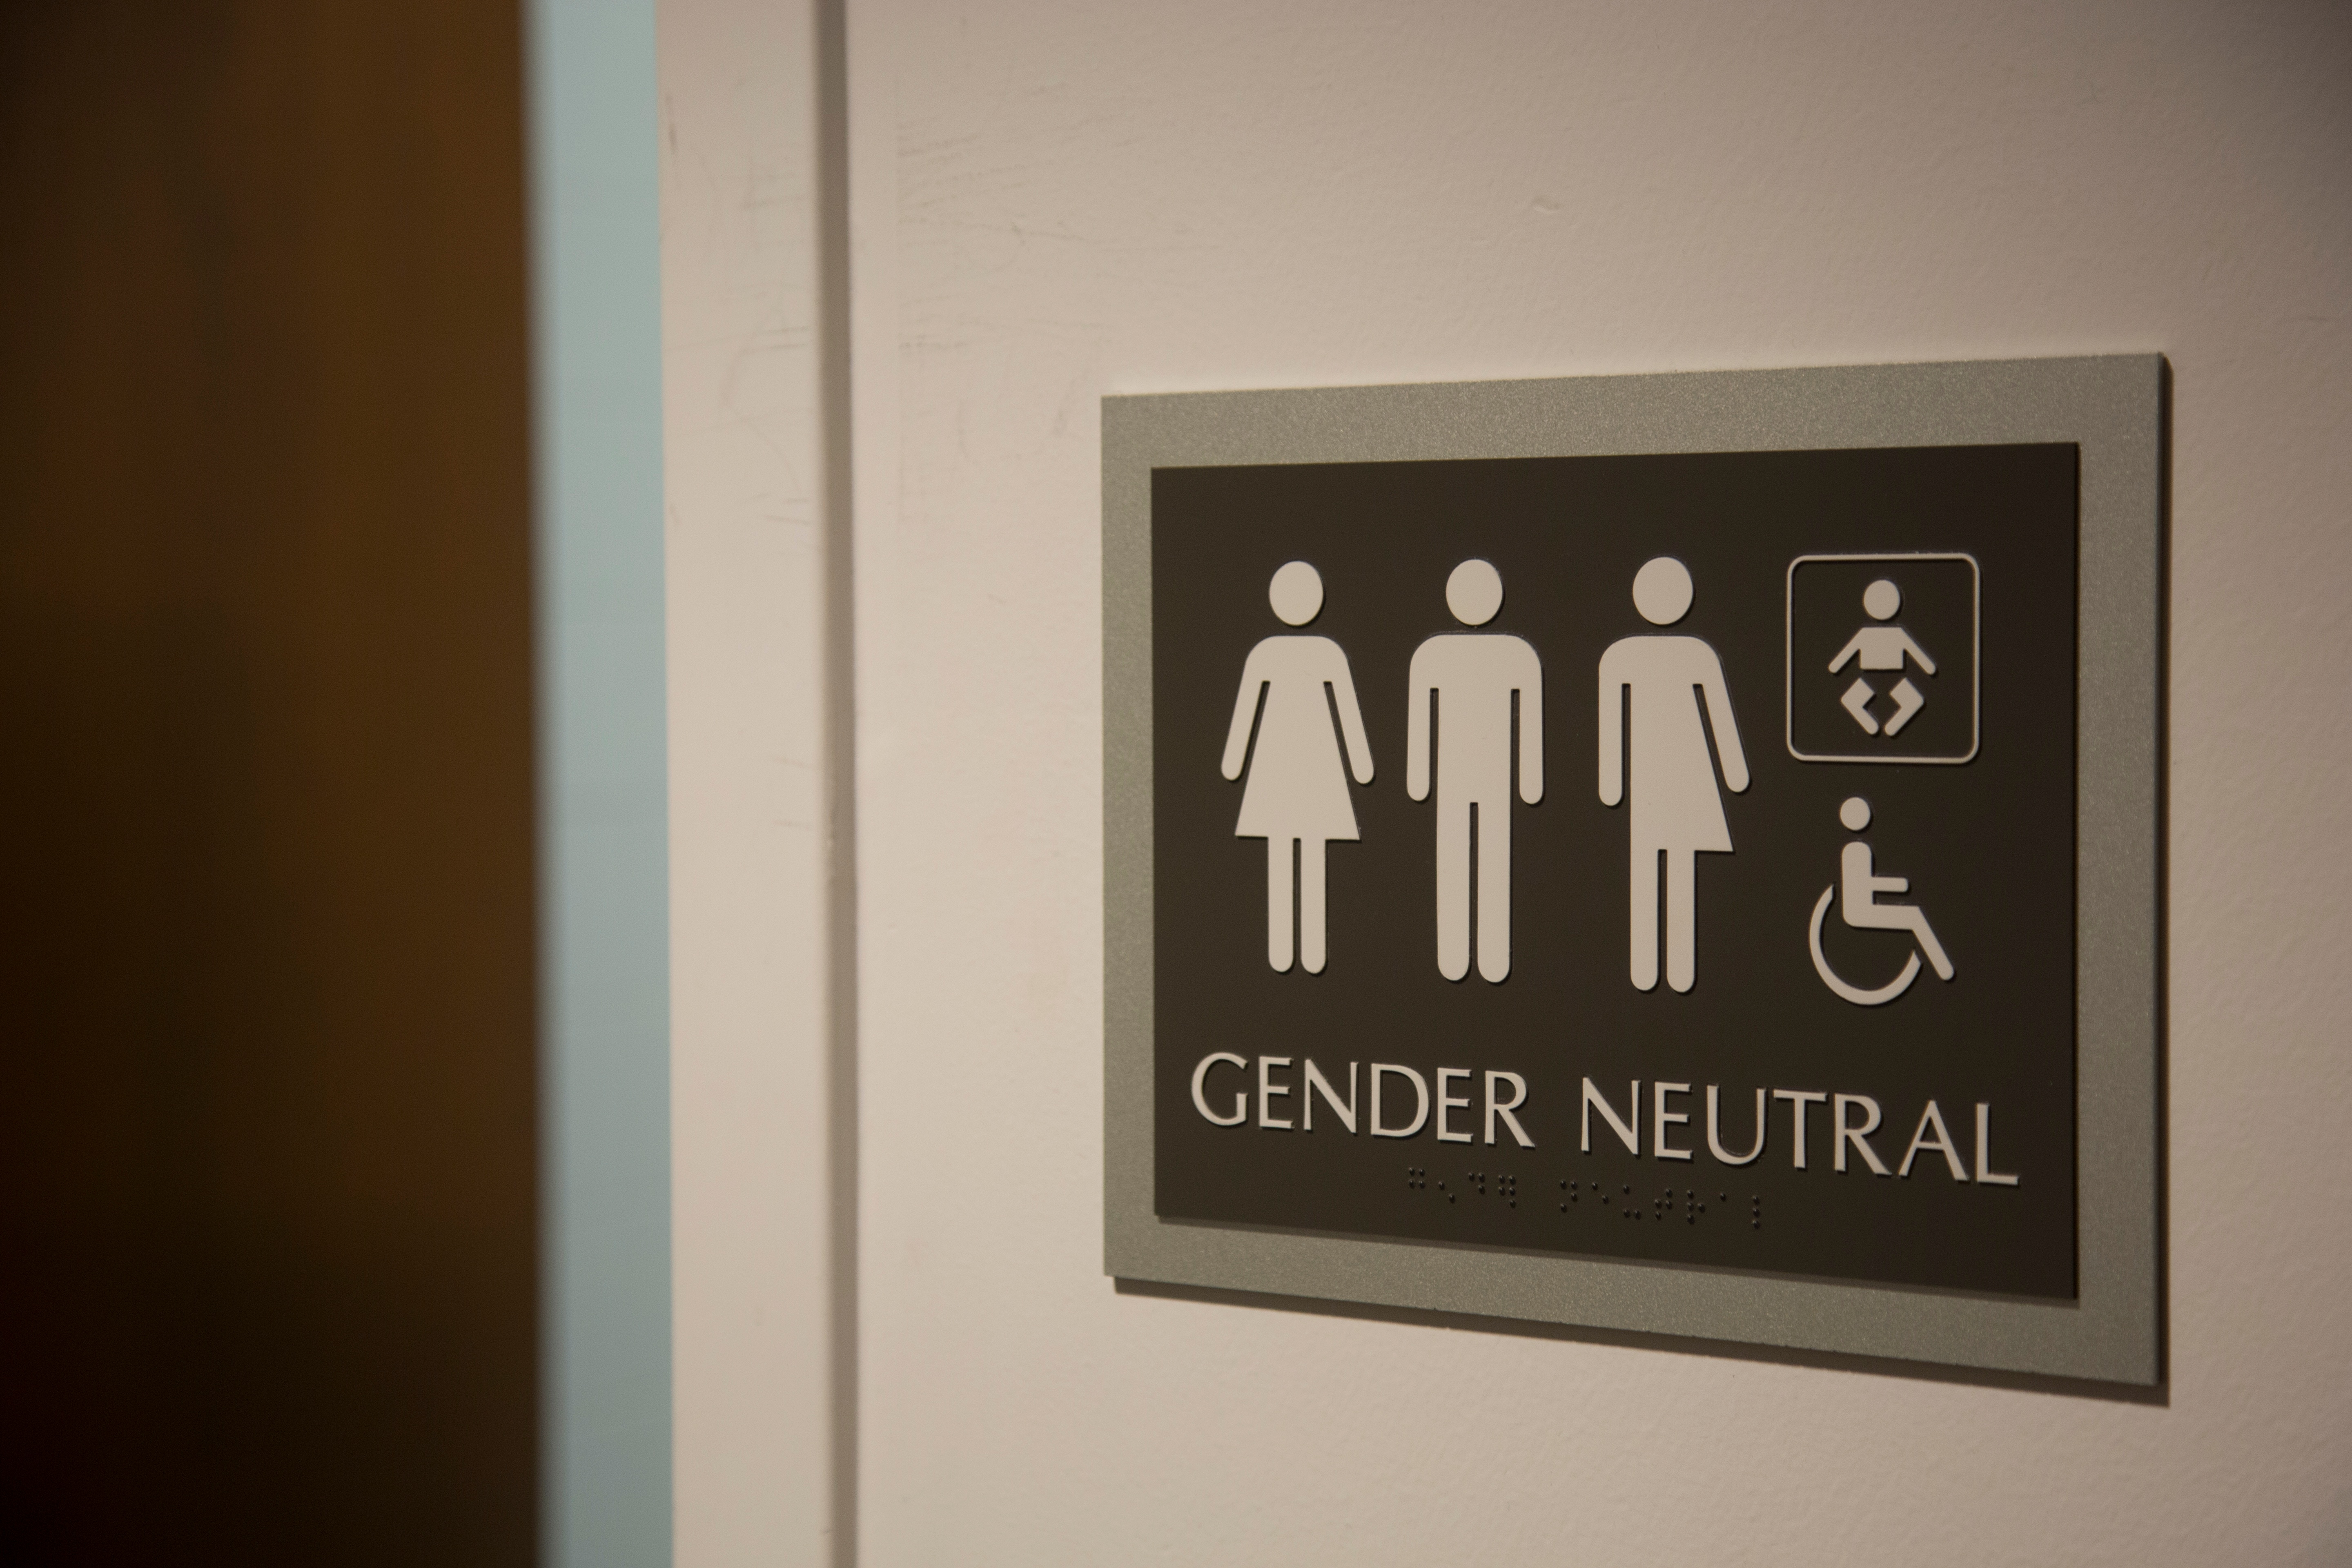 gender neutral bathrooms code conflicts